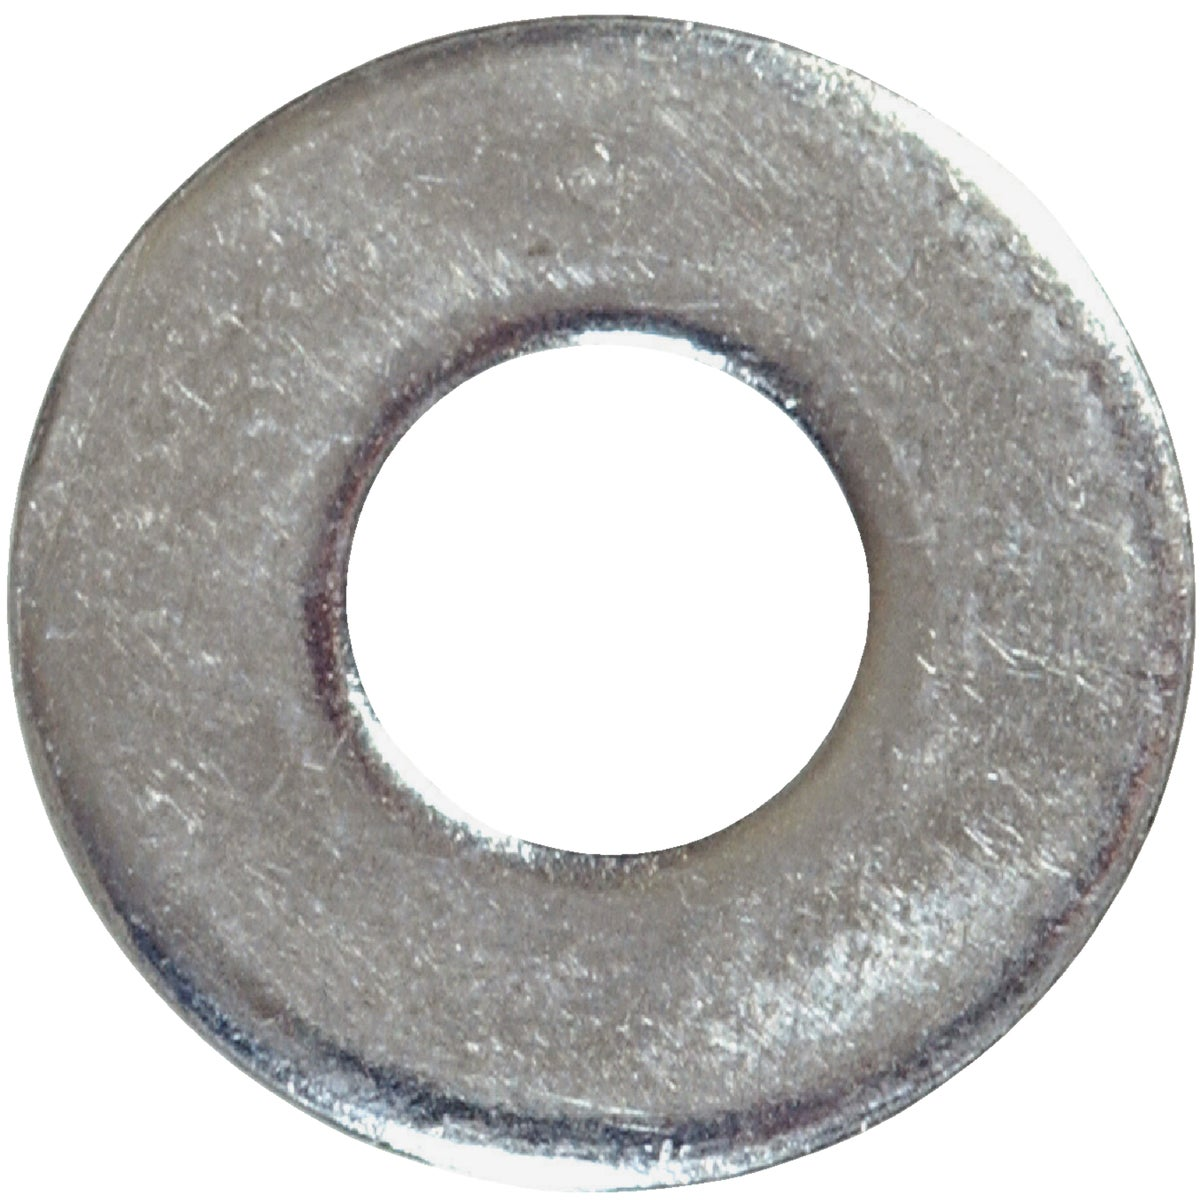 "5LB 5/16"" USS FLT WASHER - 270009 by Hillman Fastener"